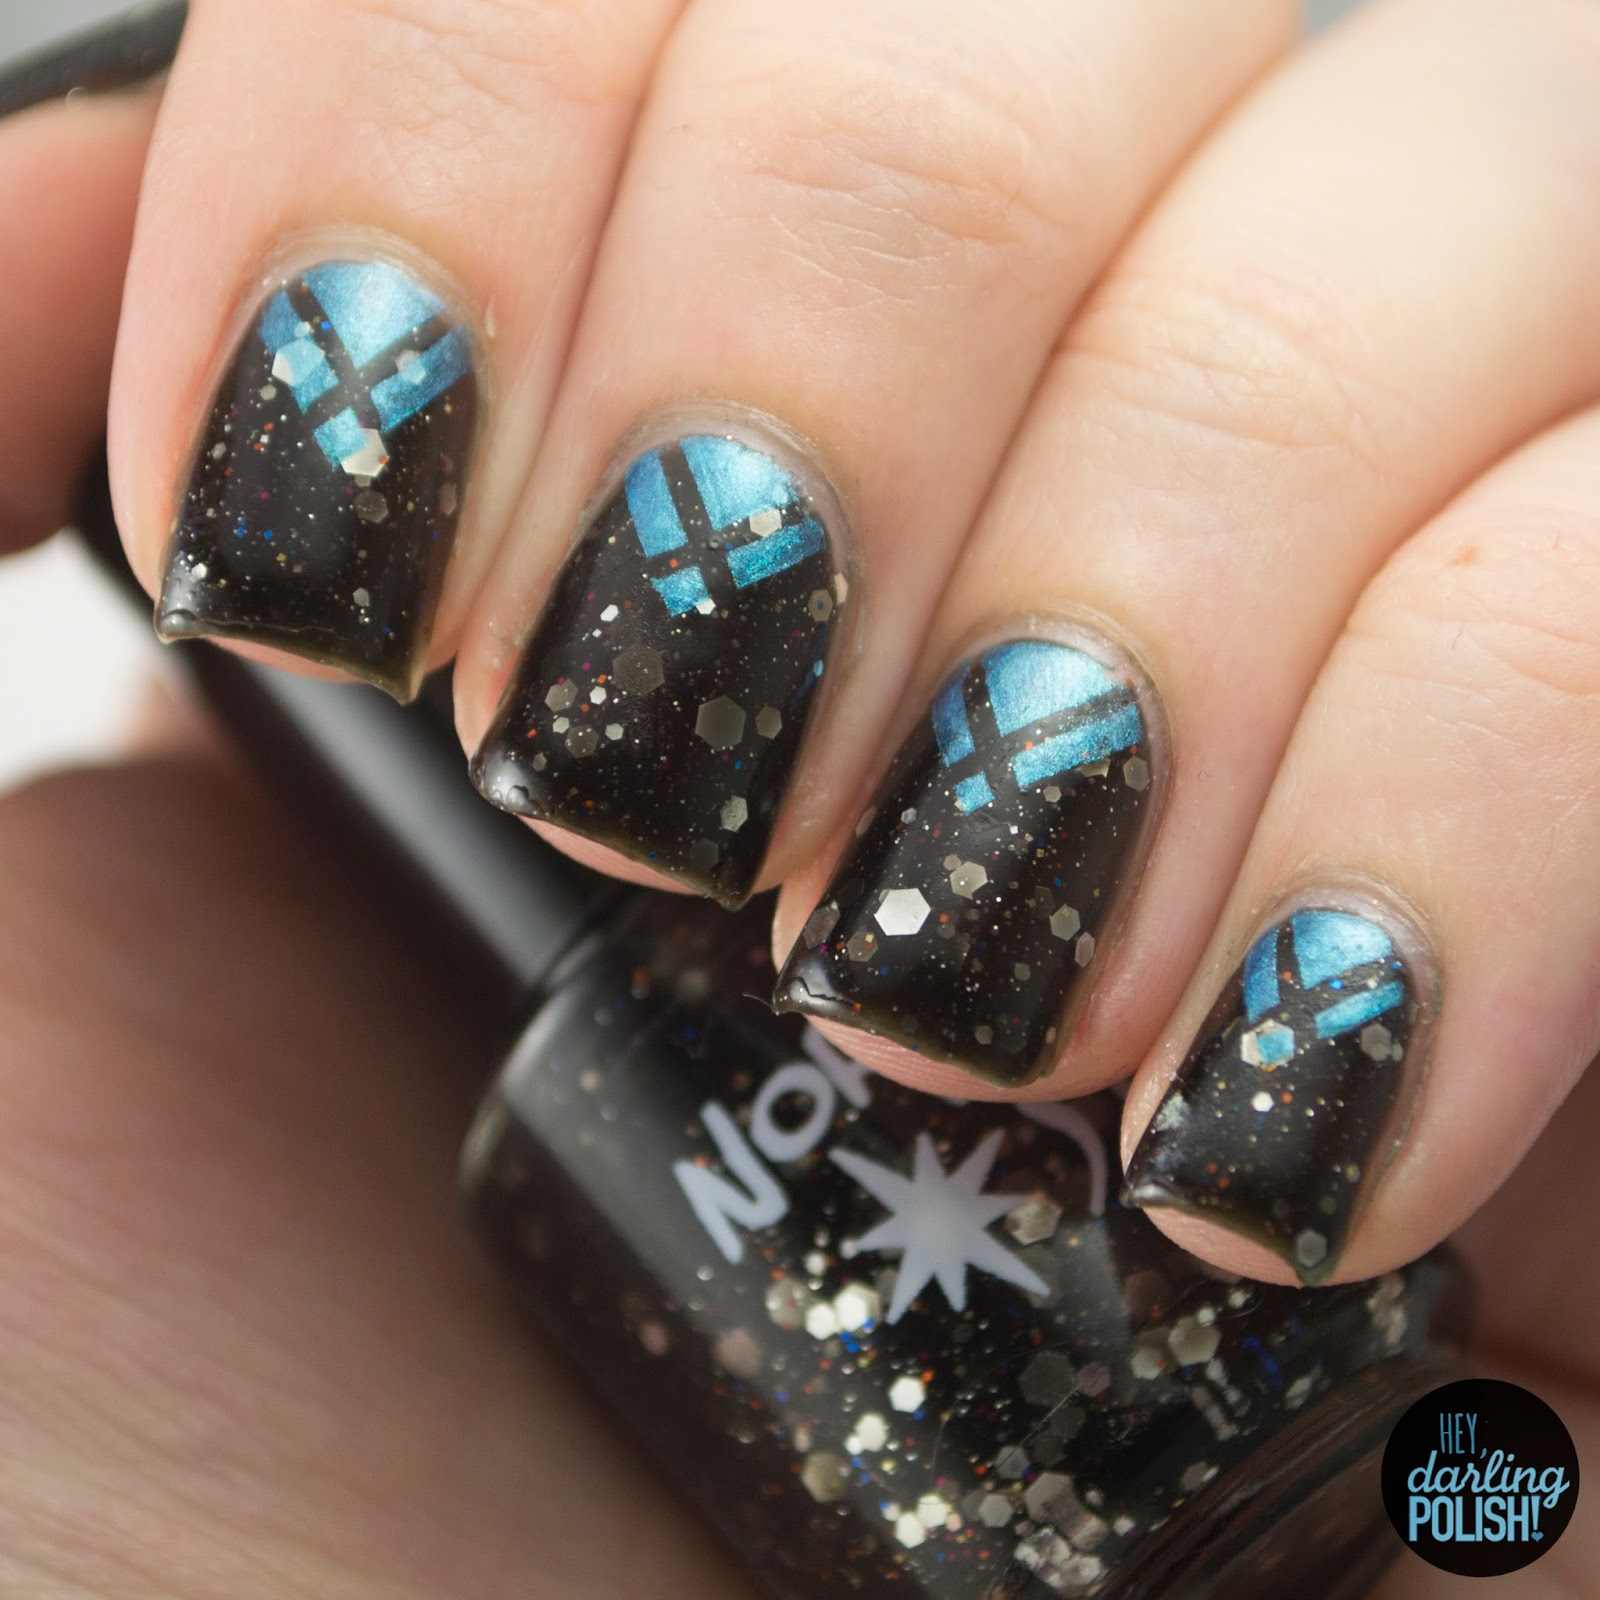 nails, nail art, polish, nail polish, northern star polish, black, glitter, indie, indie polish, chevron, triangles, julep, hey darling polish, golden oldie thursdays